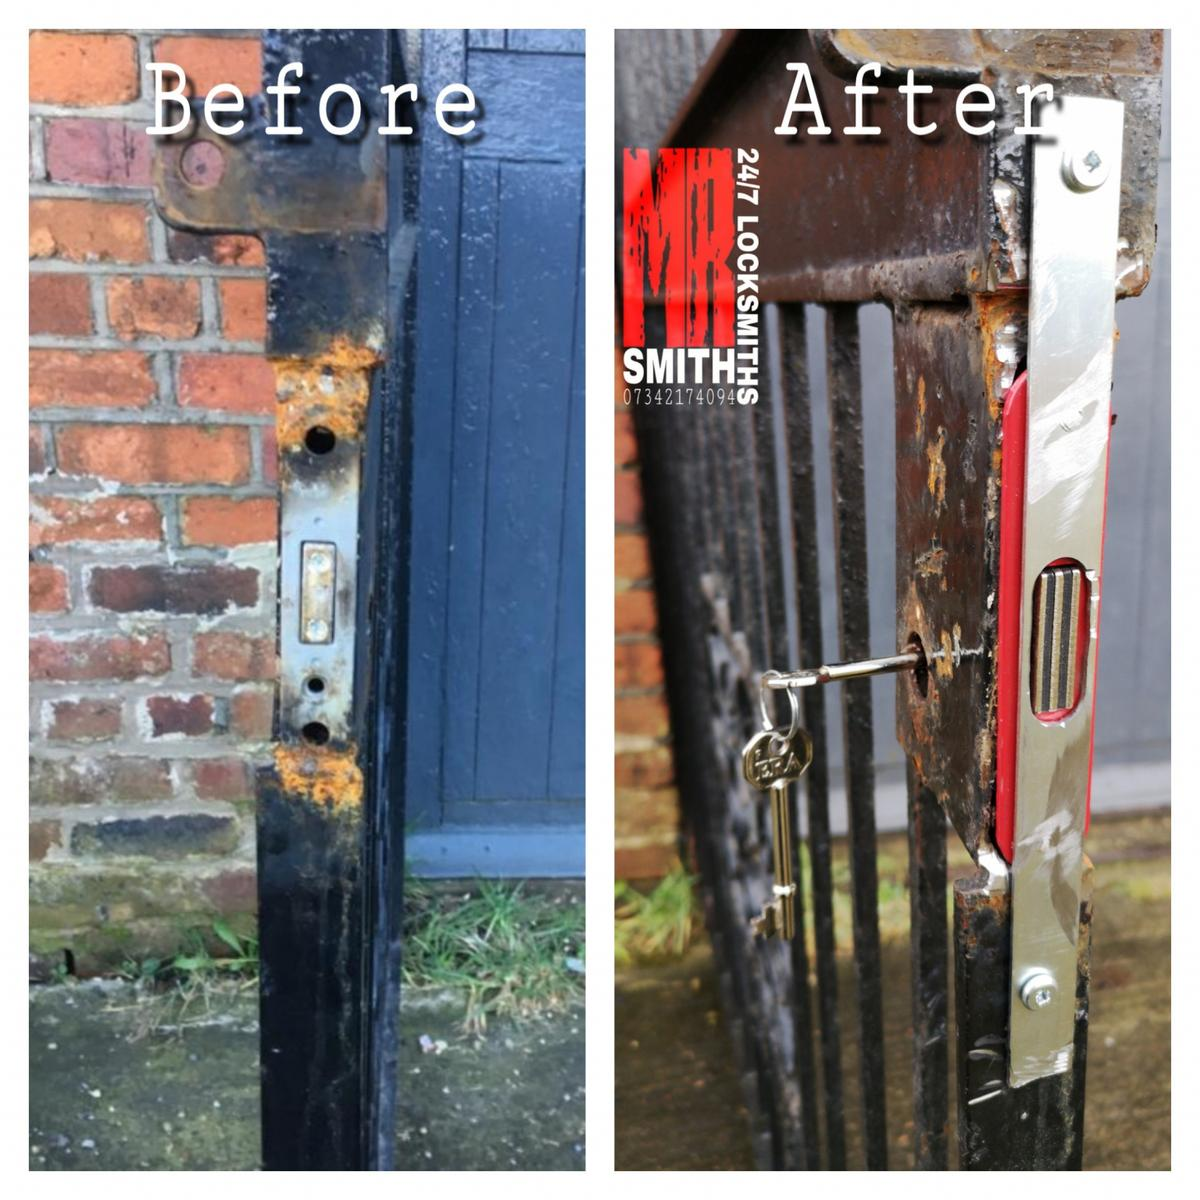 Reliable and Recommended, 24hr Emergency Locksmiths in Leeds, covering the whole of West Yorkshire.  Gain Entry (if you're locked out or in) UPVC Repairs (Windows or Doors) Lock Replacement (incl. Garages) Lock Upgrades (High Security TS007) Security Gate Locks (Subject to Survey) Digital Locks (Mechanical Push Button) No Call Out Charge No VAT No Hidden Extras Liability Insurance and DBS Checked  Check out Mr Smith's reviews on social media or Google  From £60 plus Parts